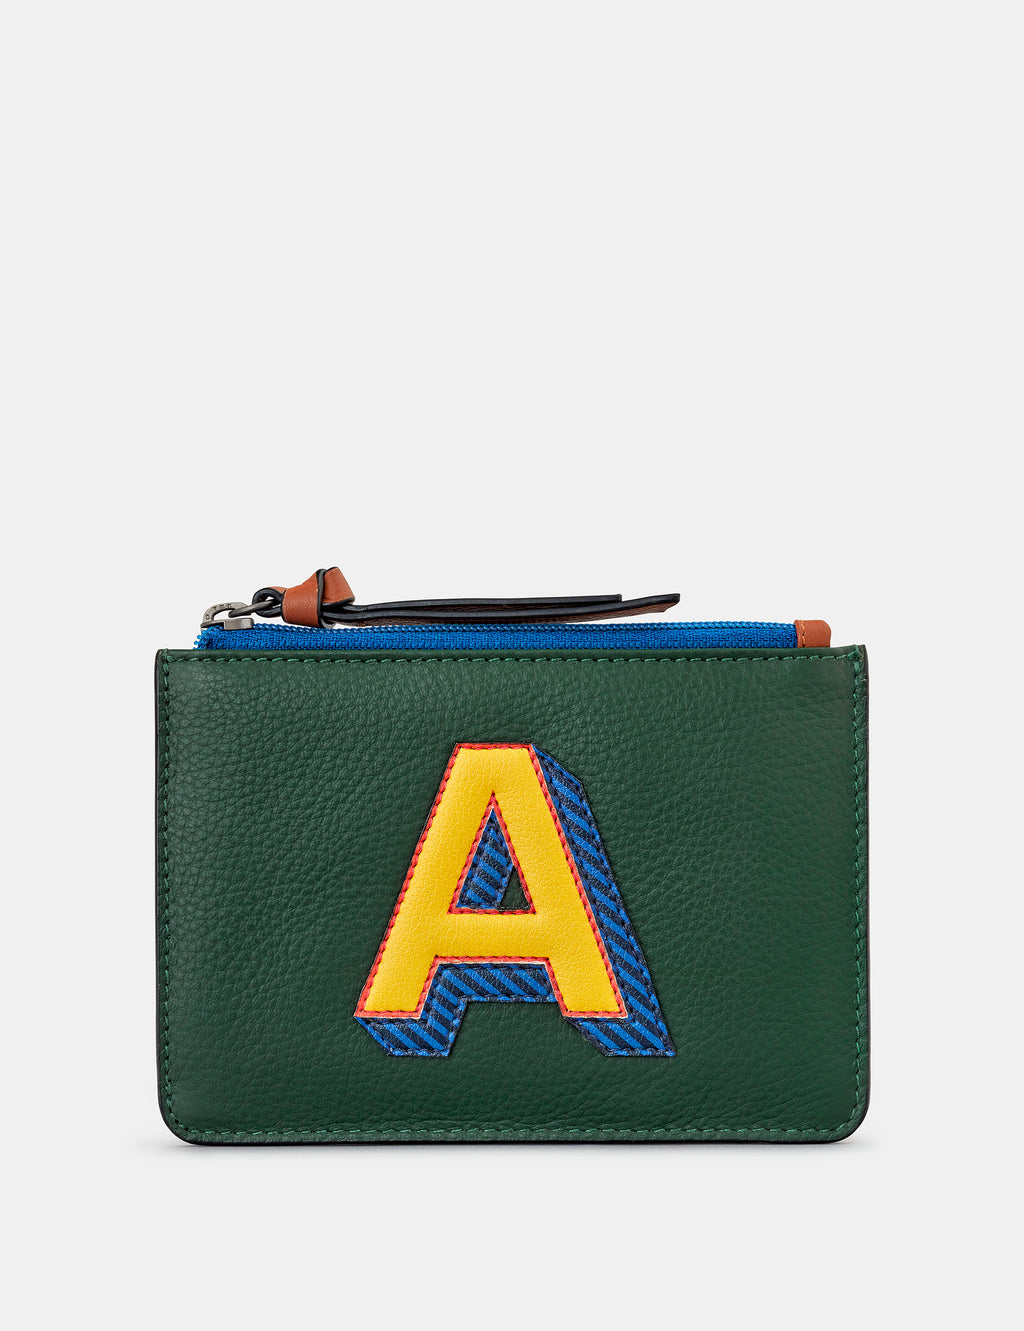 A Initials Green Leather Zip Top Purse